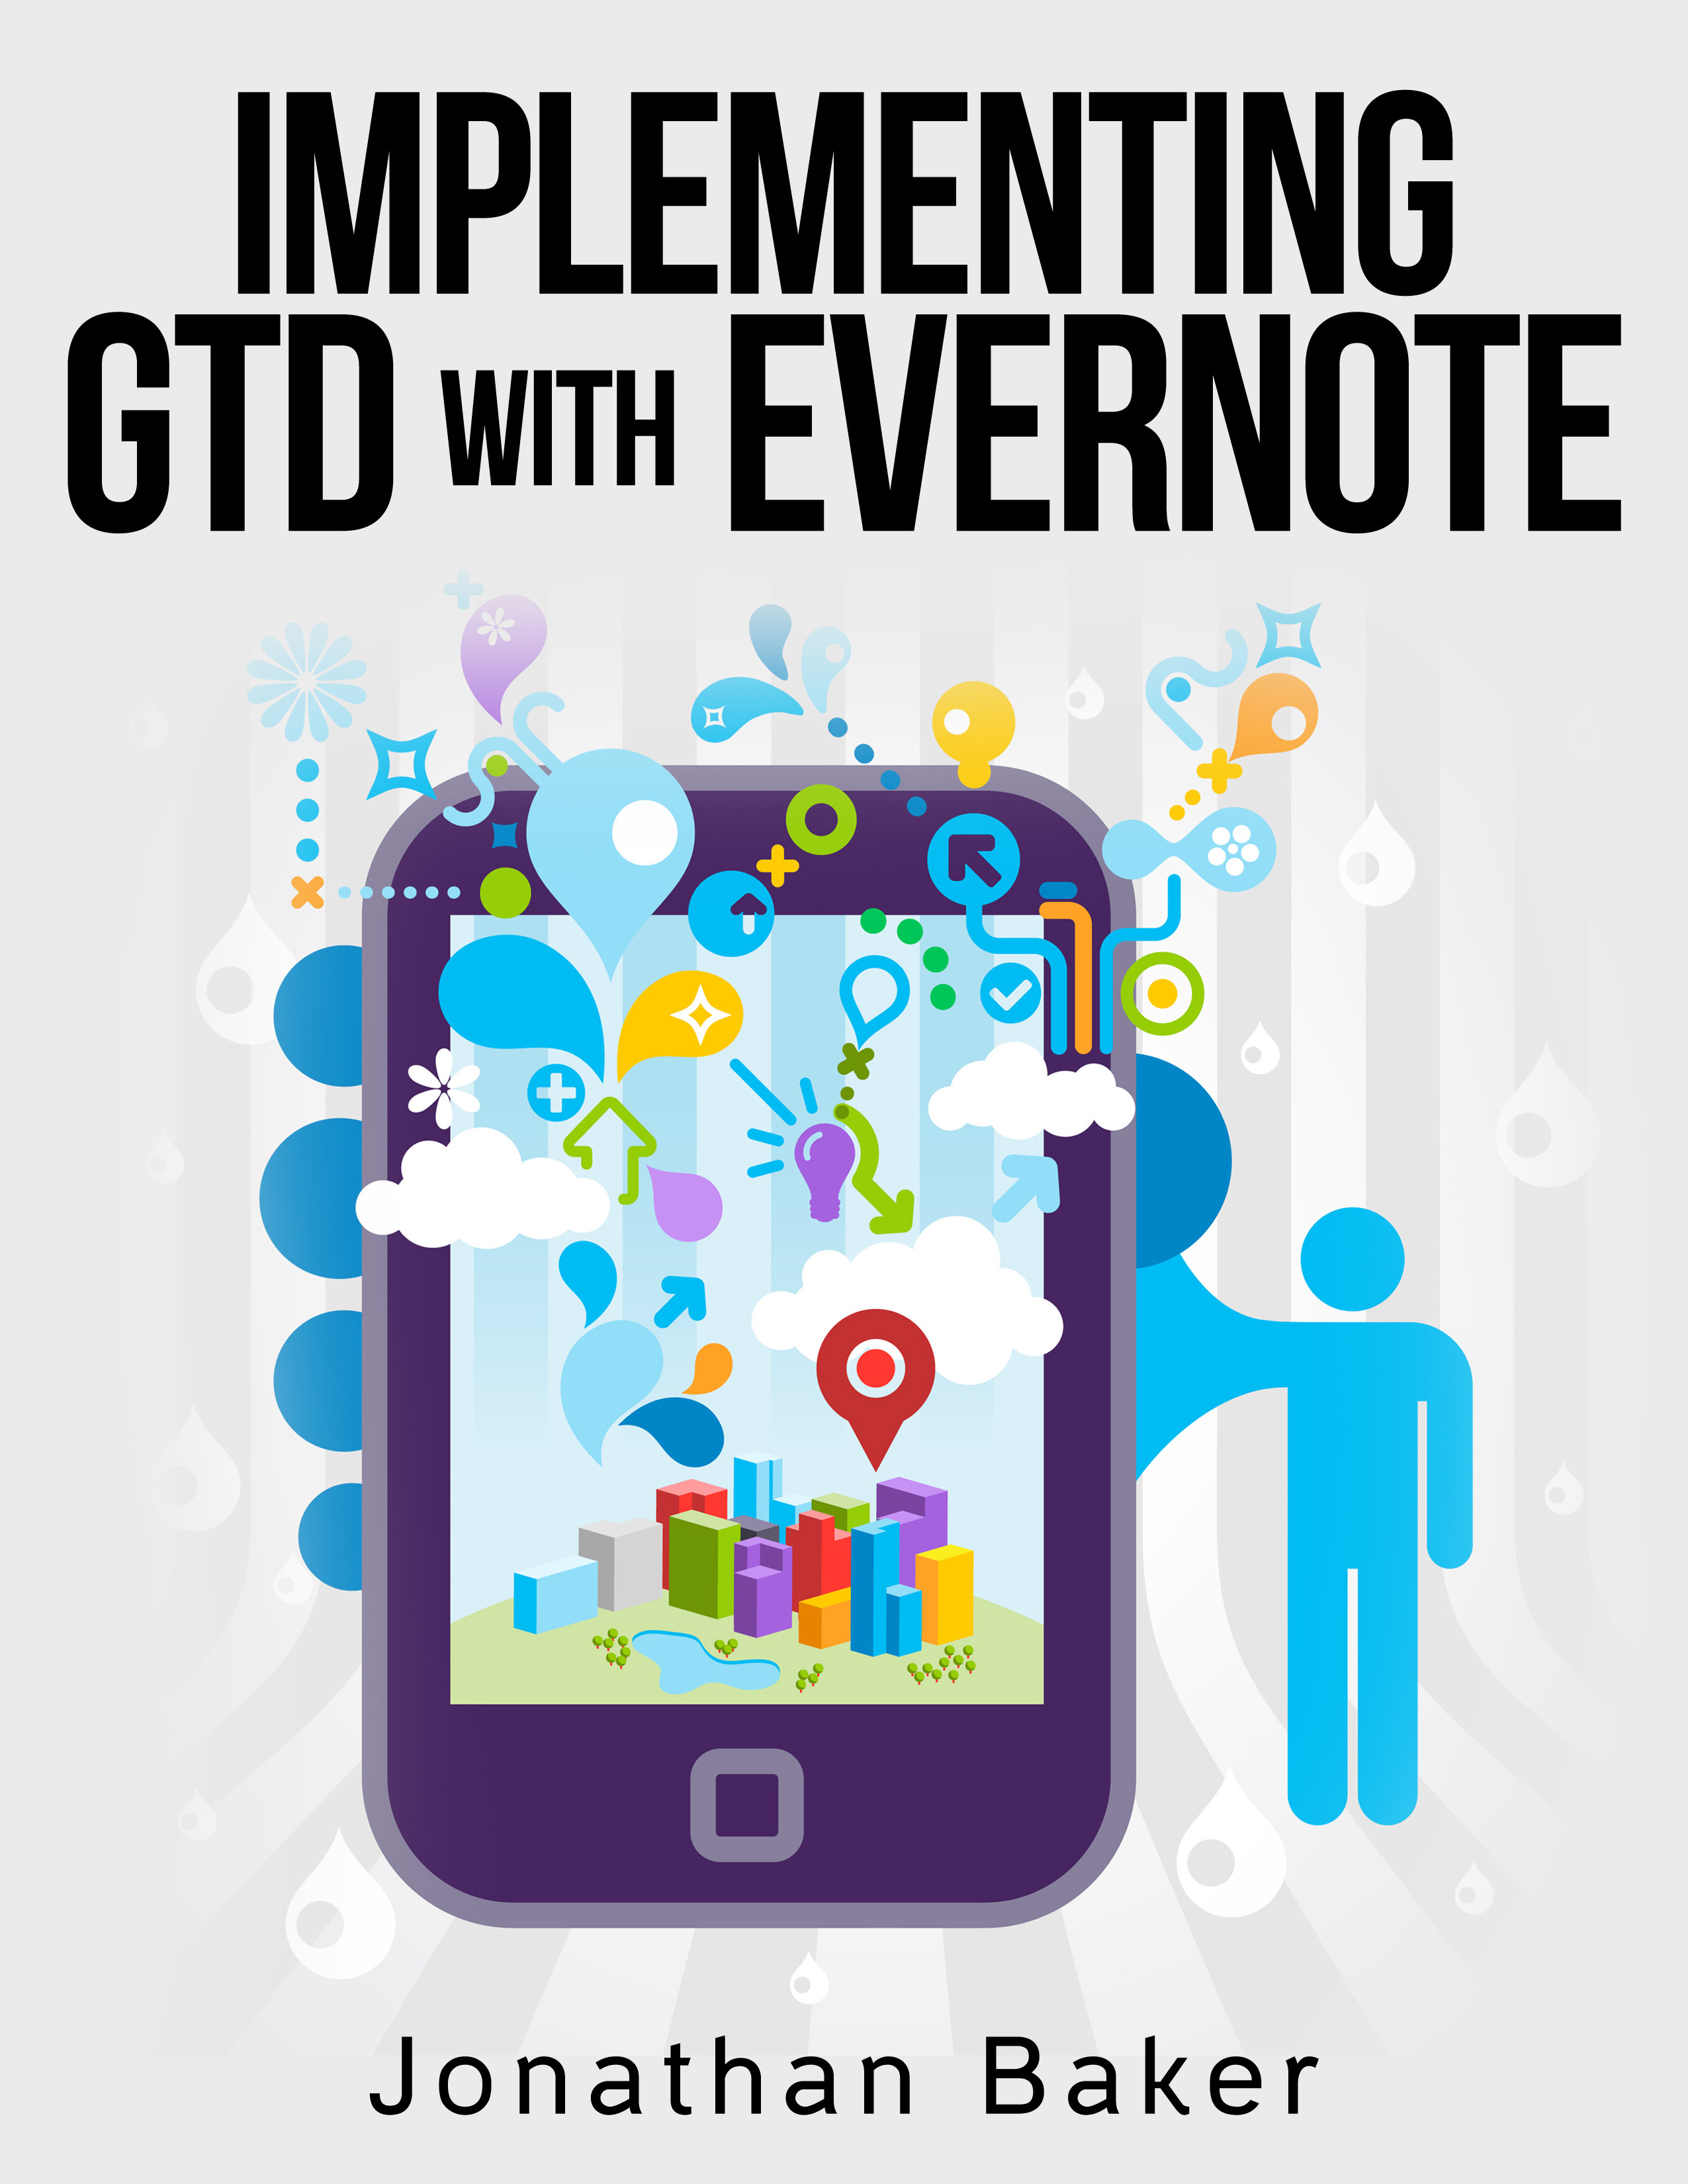 Implementing gtd with evernote: learn how to merge the getting things done concept with evernote